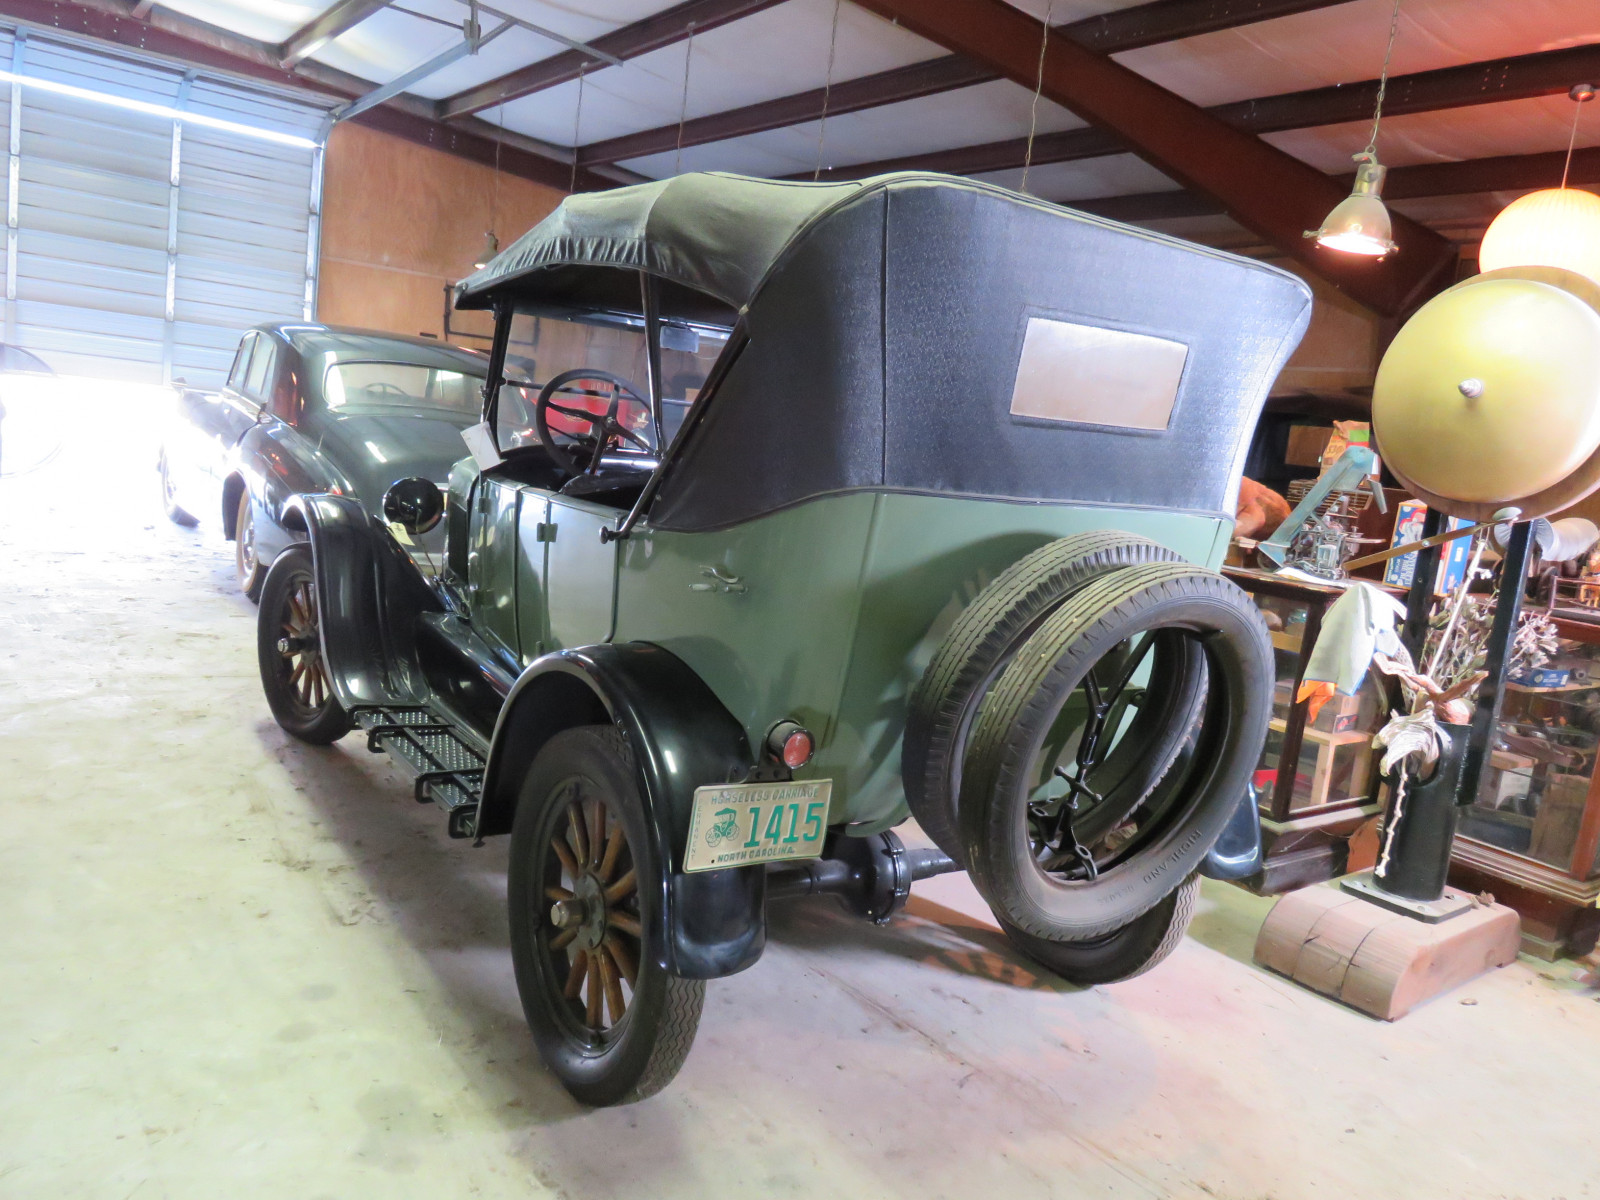 1926 Ford Model T Touring Car - Image 4